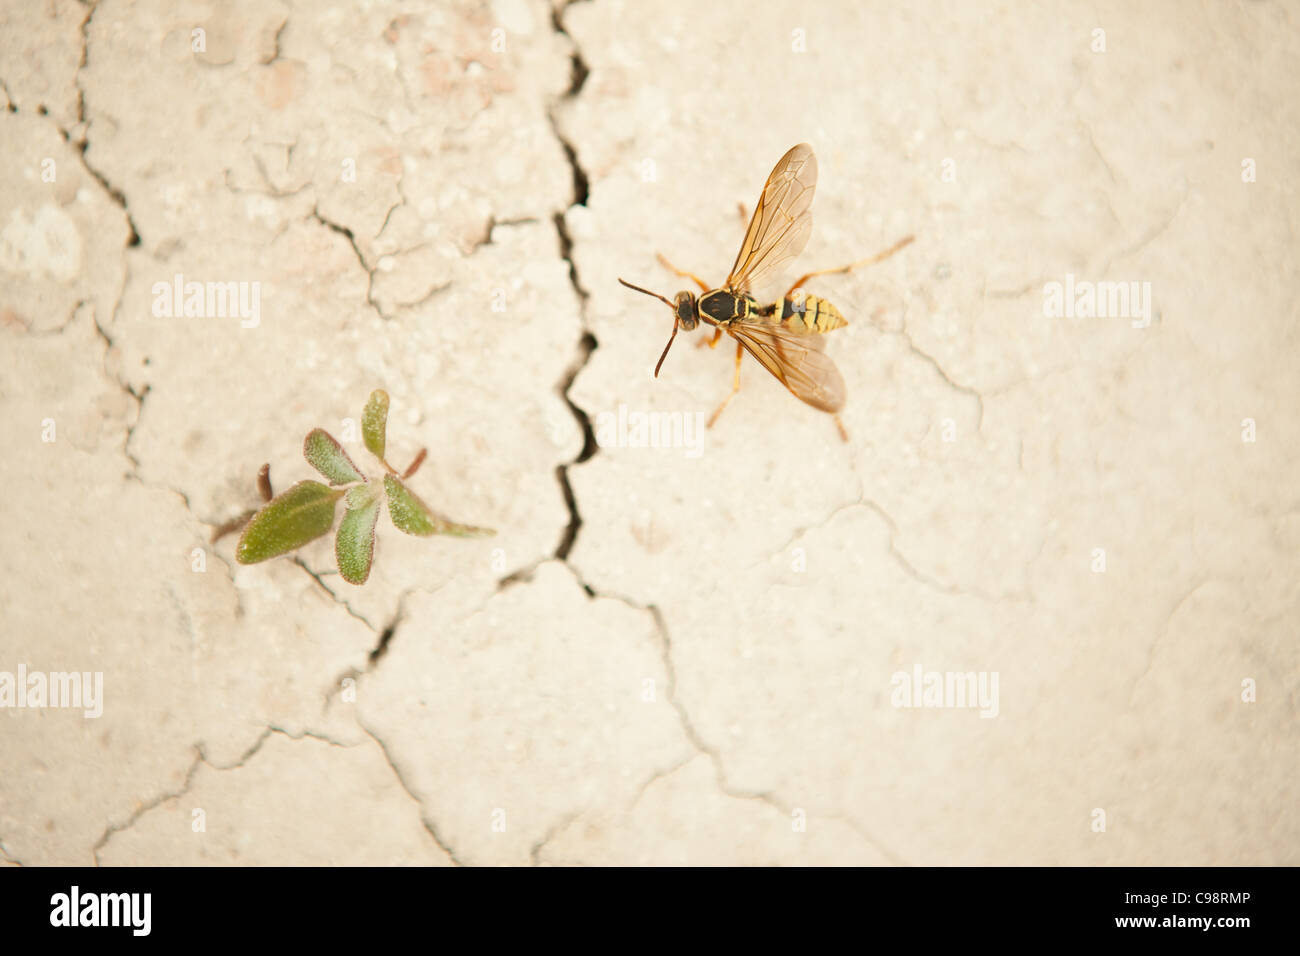 A wasp and weed on cracked wall - Stock Image